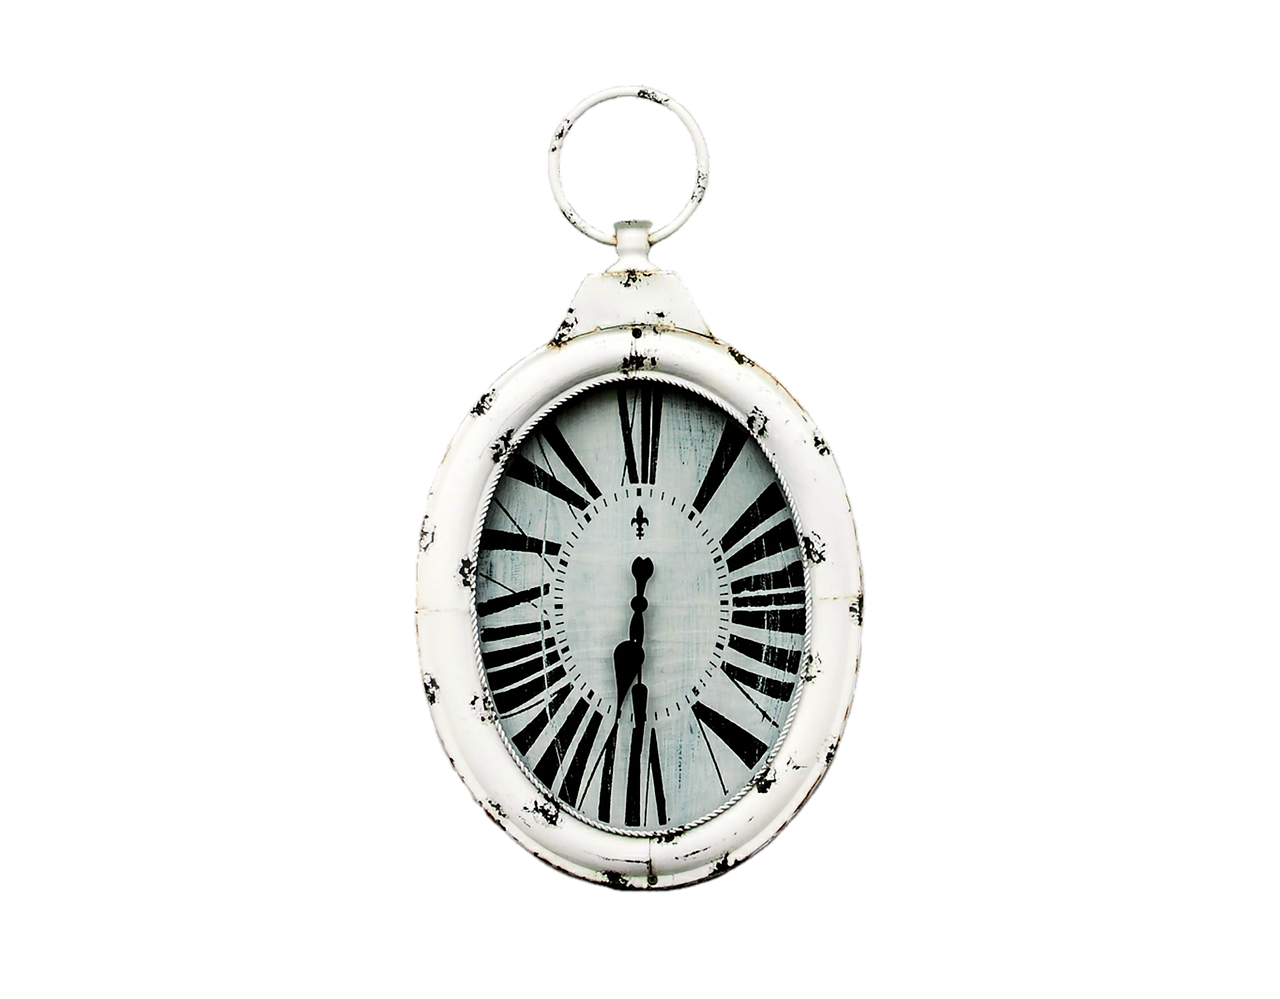 clock wall clock pocket watch free photo